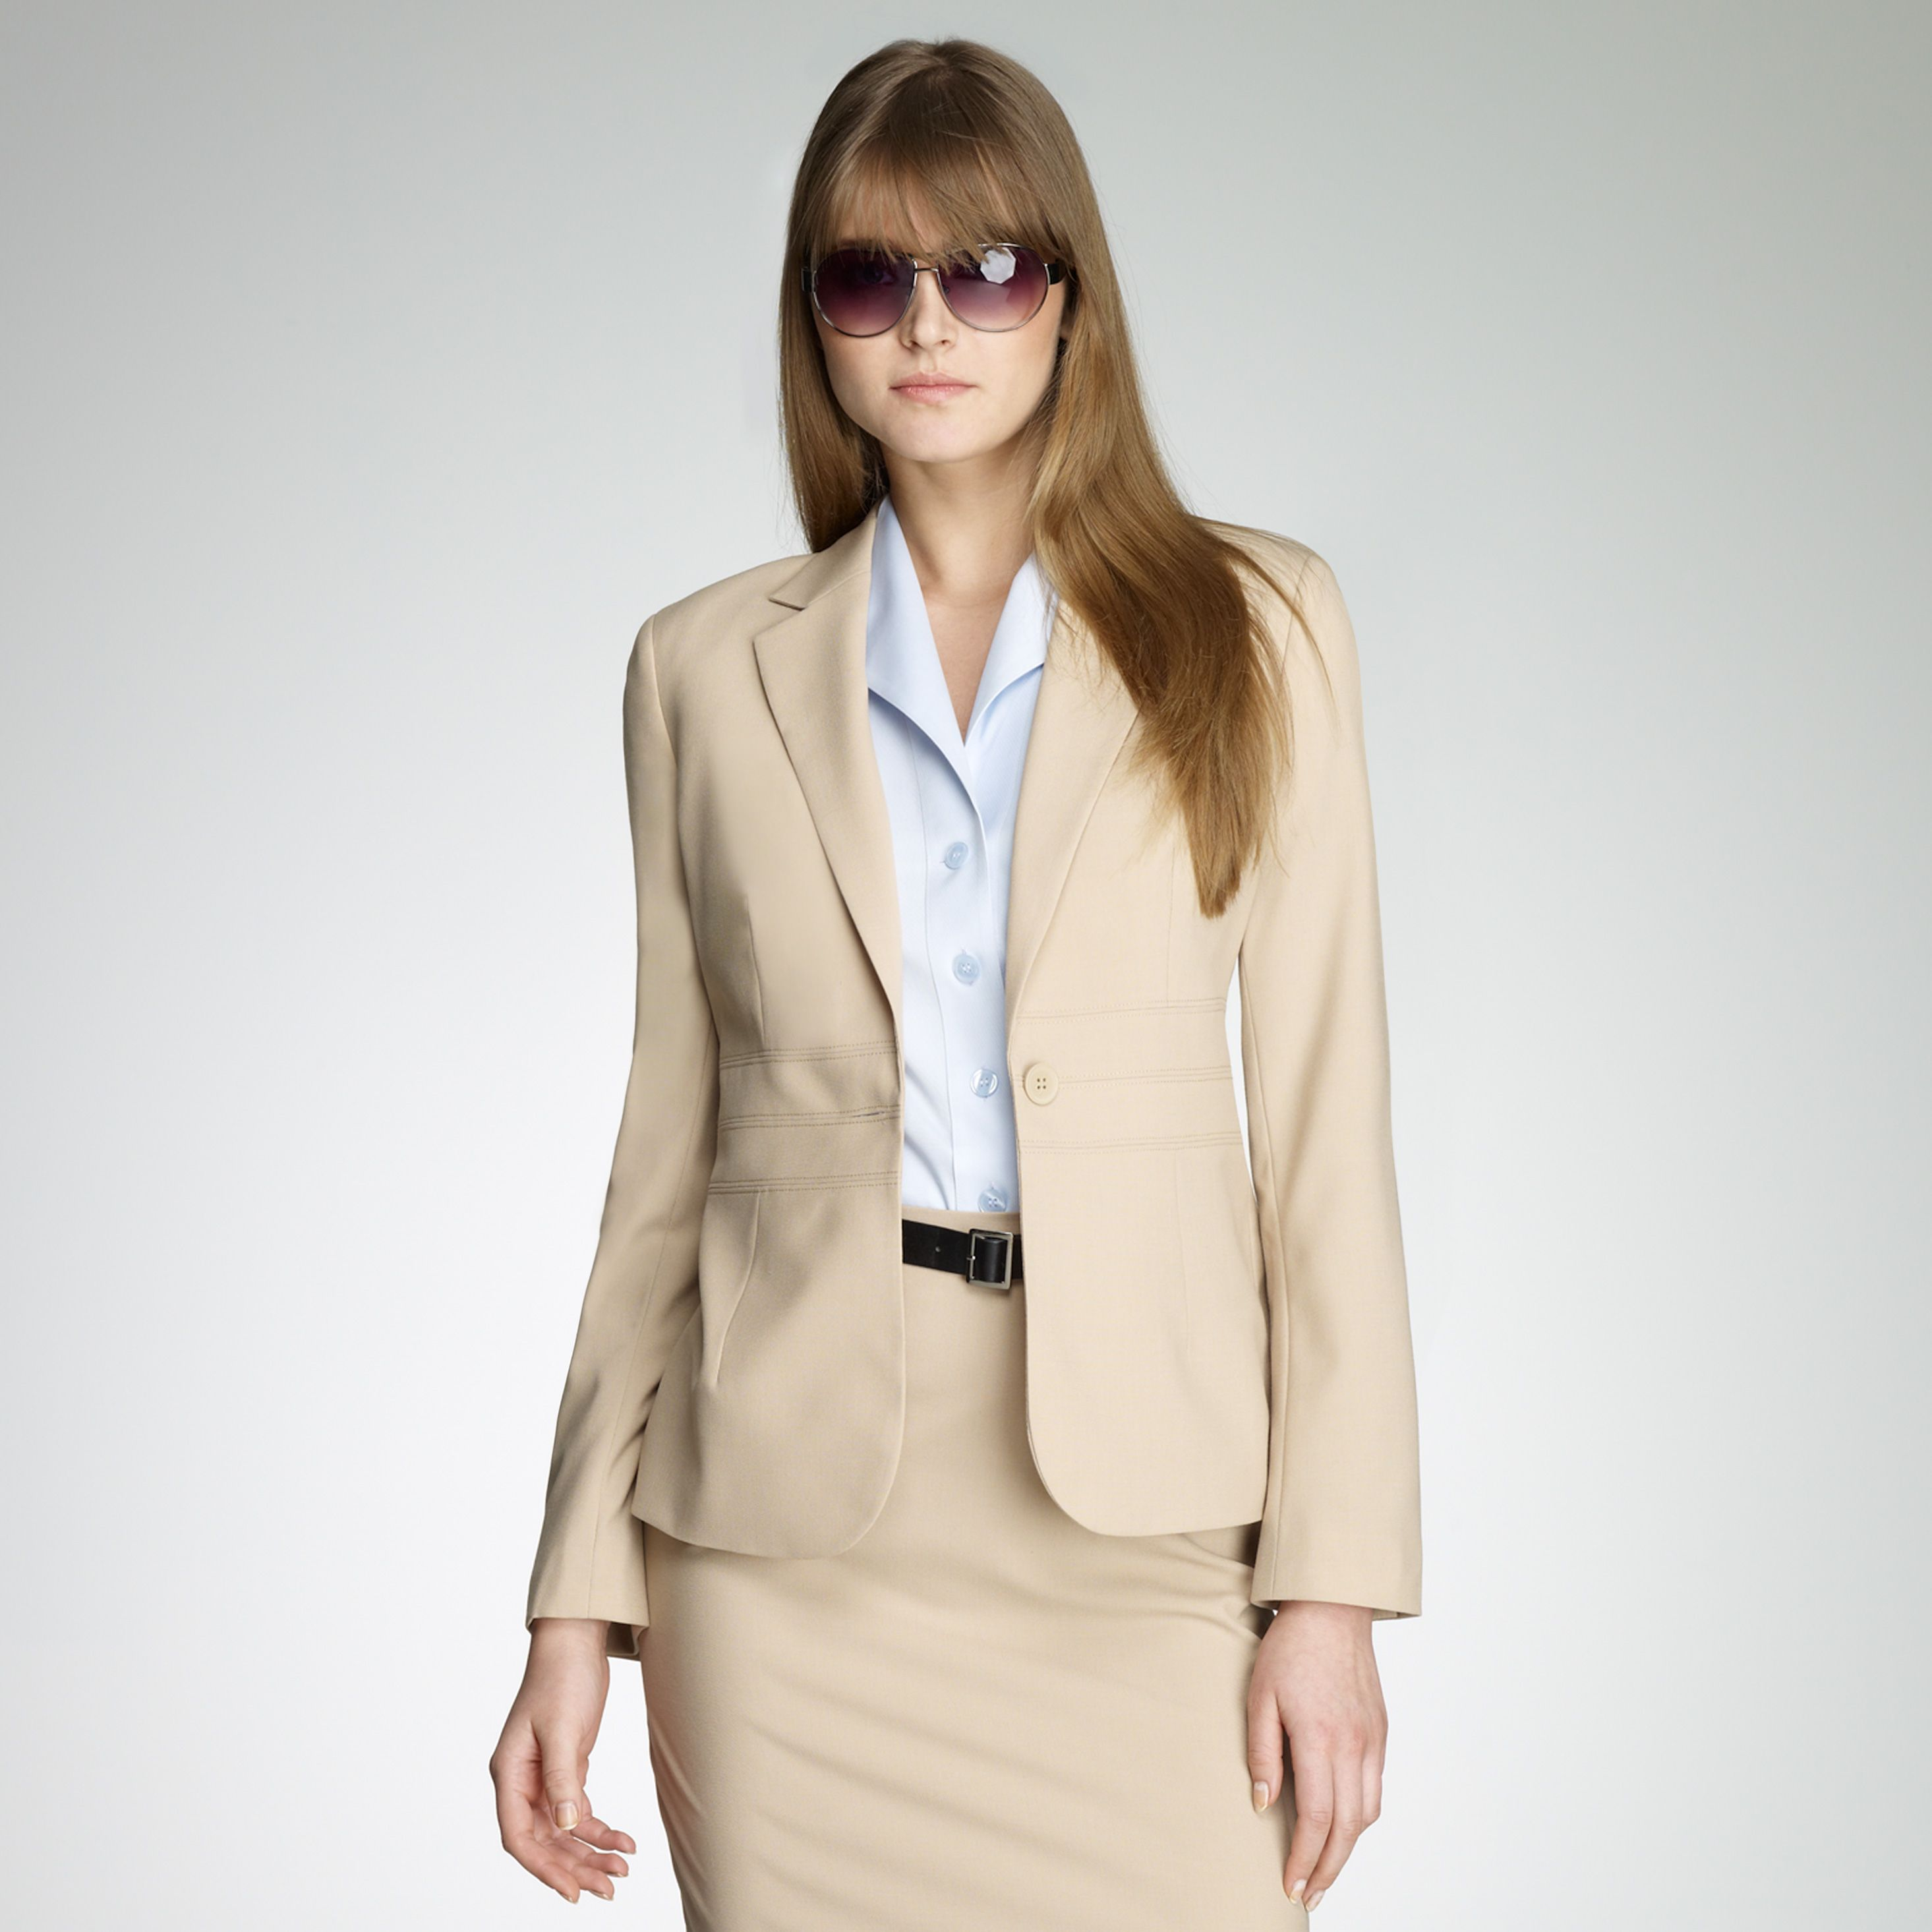 Washable Wool Career Jacket | Women in High Power/Dominate Poses ...